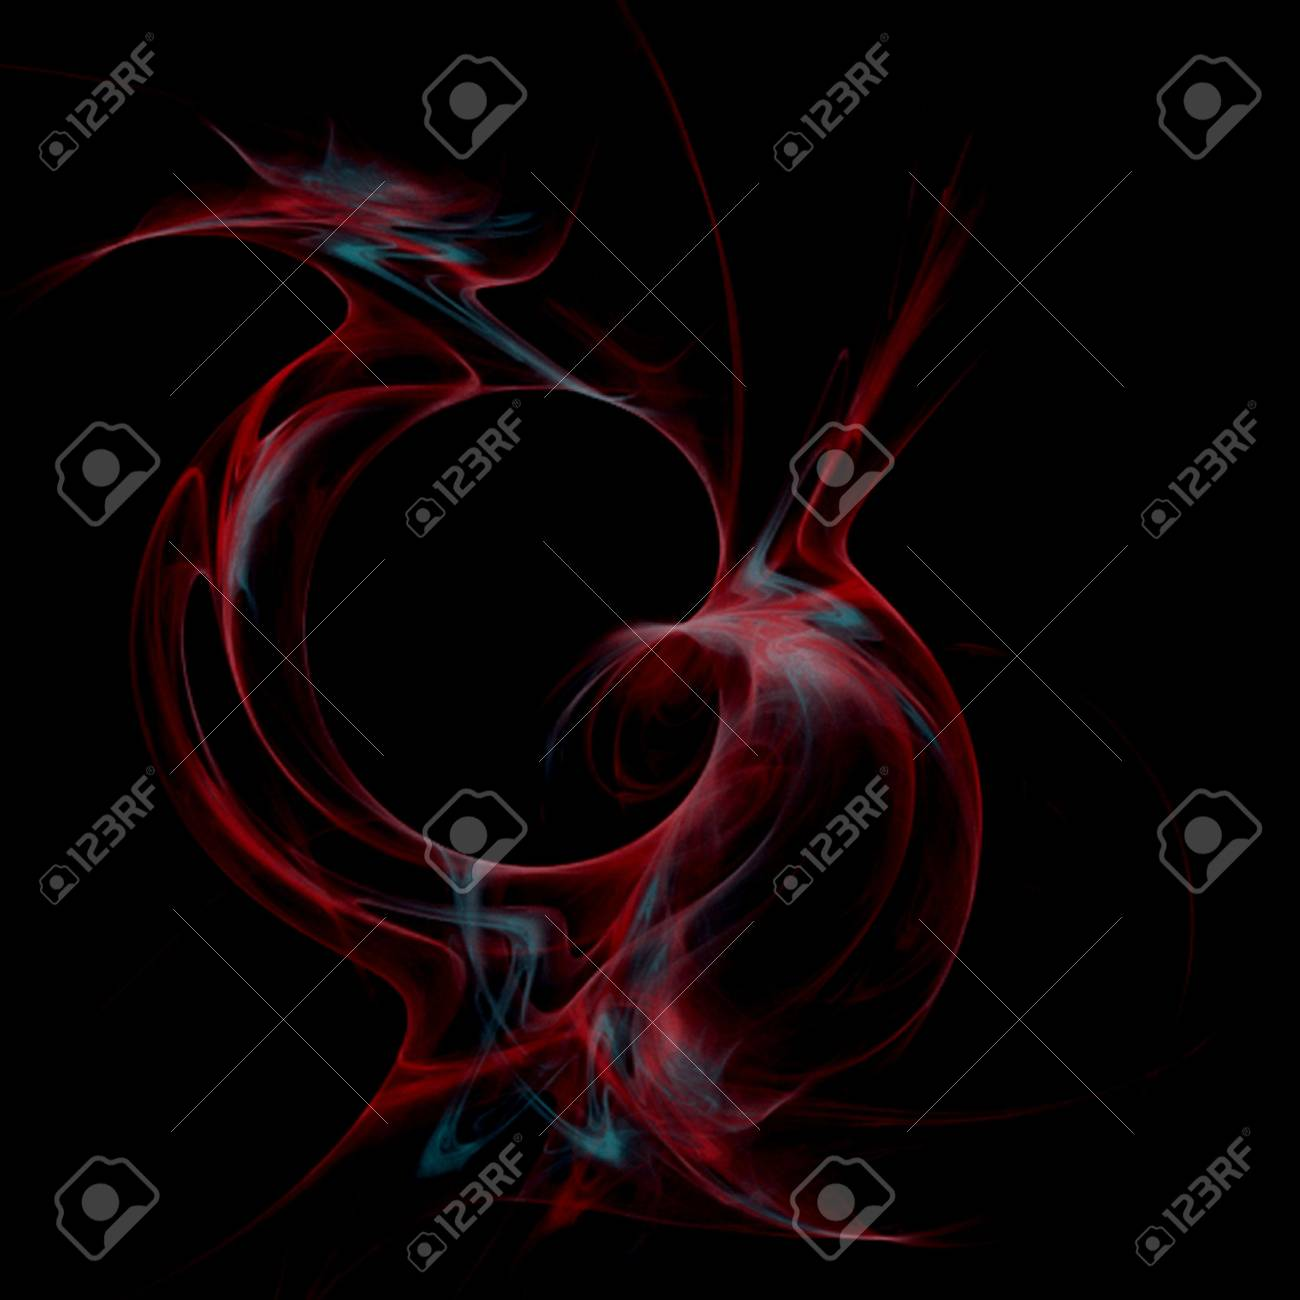 Abstract form, design, shape Stock Photo - 3374513